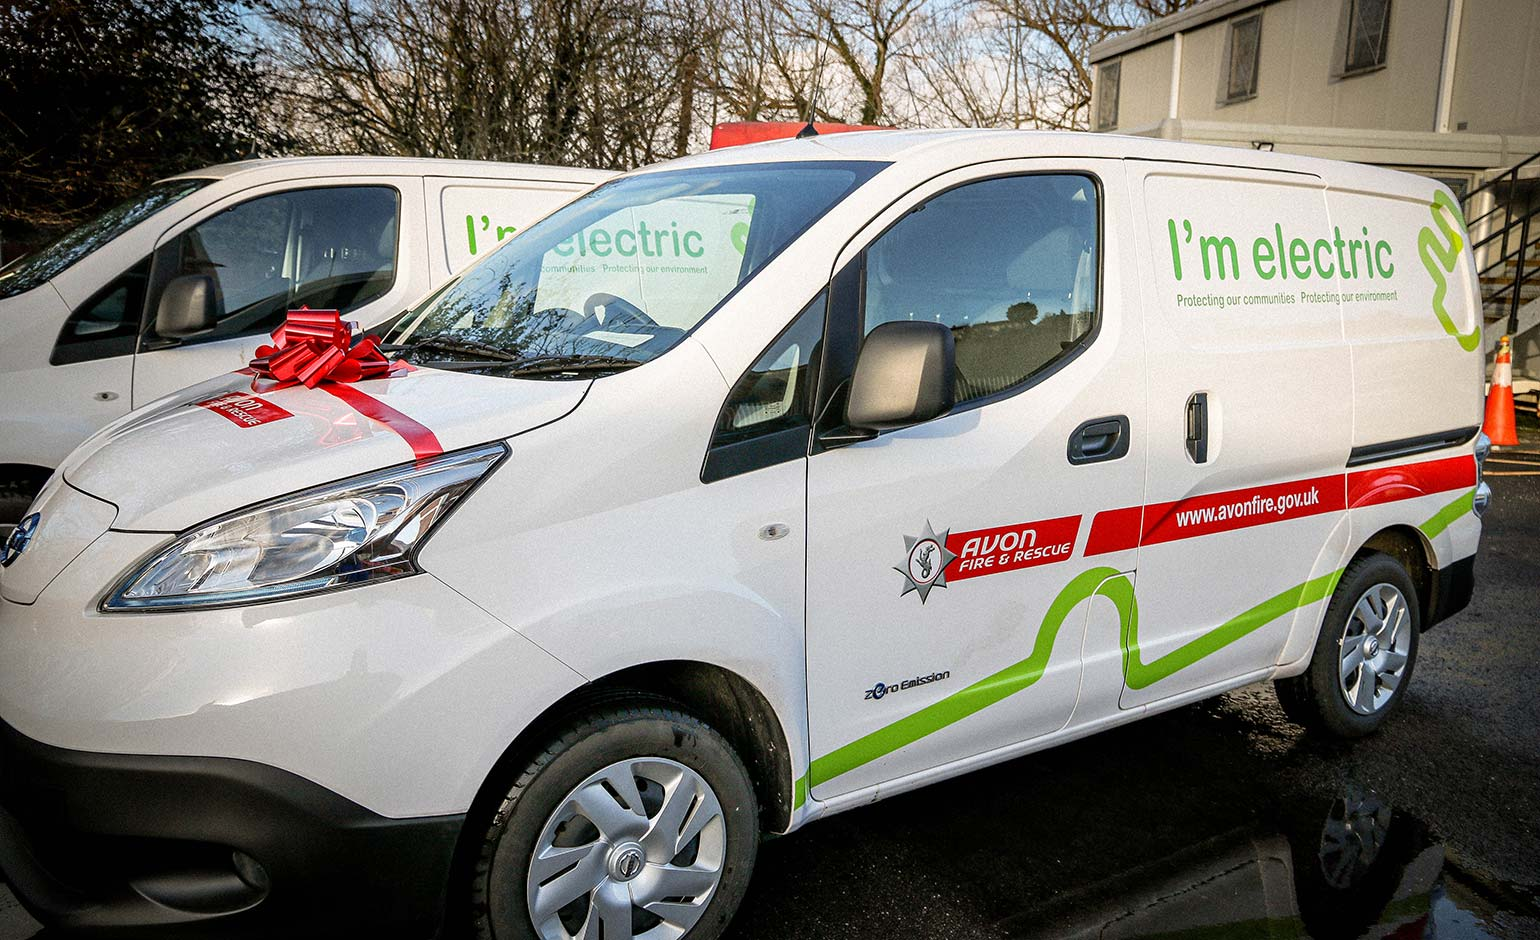 Avon Fire & Rescue Service introduces electric vans into its vehicle fleet | Bath Echo